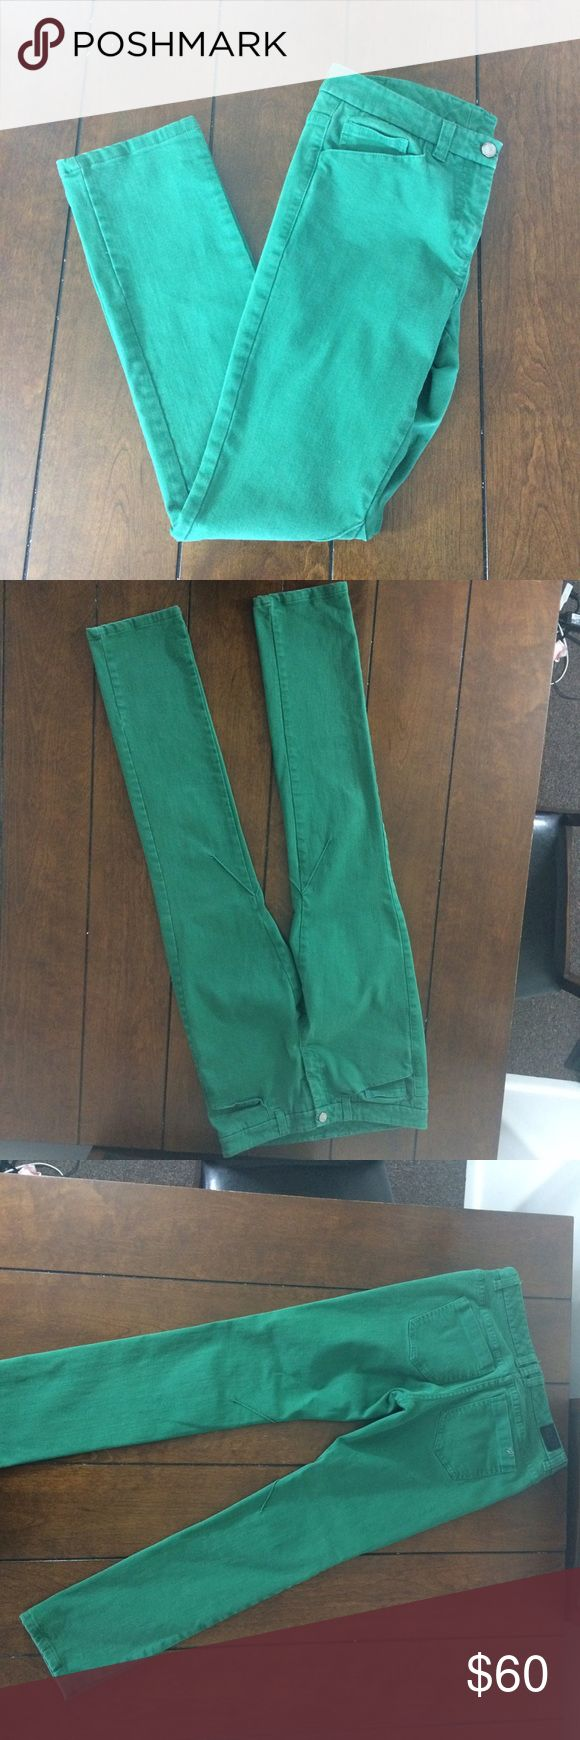 Reiss 1971 green jeans Woman's size six reiss 1971 green jeans. The color is best represented in the size tag photo. No holes or stains. Light wear. The button is wobbly but not noticeable when closed. The fabric content tag has been removed. These are stretchy. The waist measures 15 inches flat across, the rise is 8 1/2 inches and the inseam is 29 inches. Reiss Jeans Straight Leg